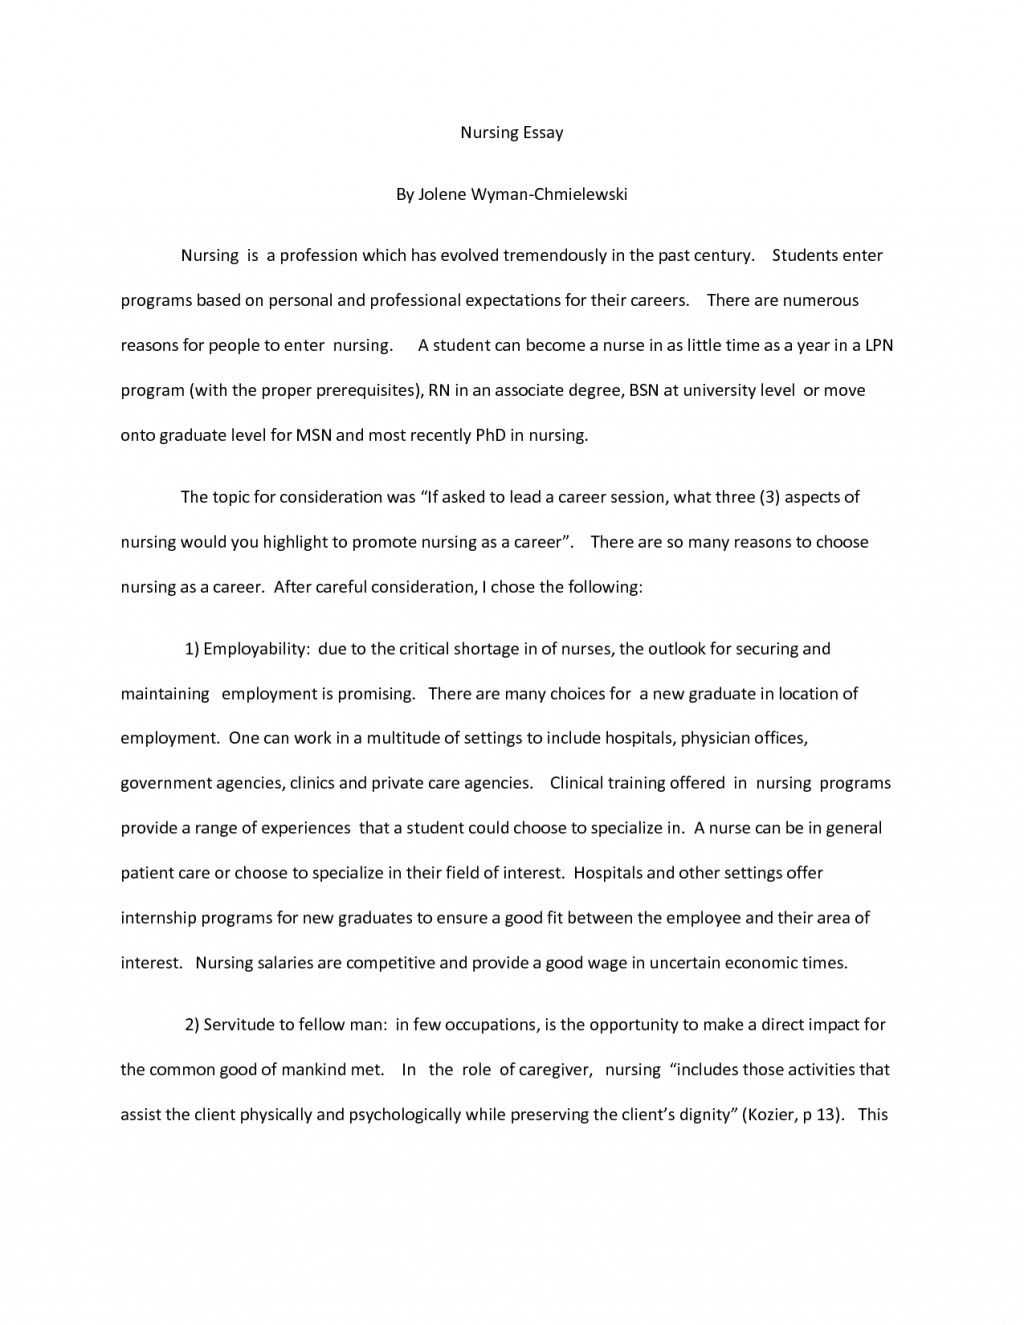 003 Nurse Application Essay Format Medical Nursing School Samples Colleges Graduate Scholarship Essays Personal Of Great Grad Applying To Fearsome Leadership And Management Examples For Admission Large